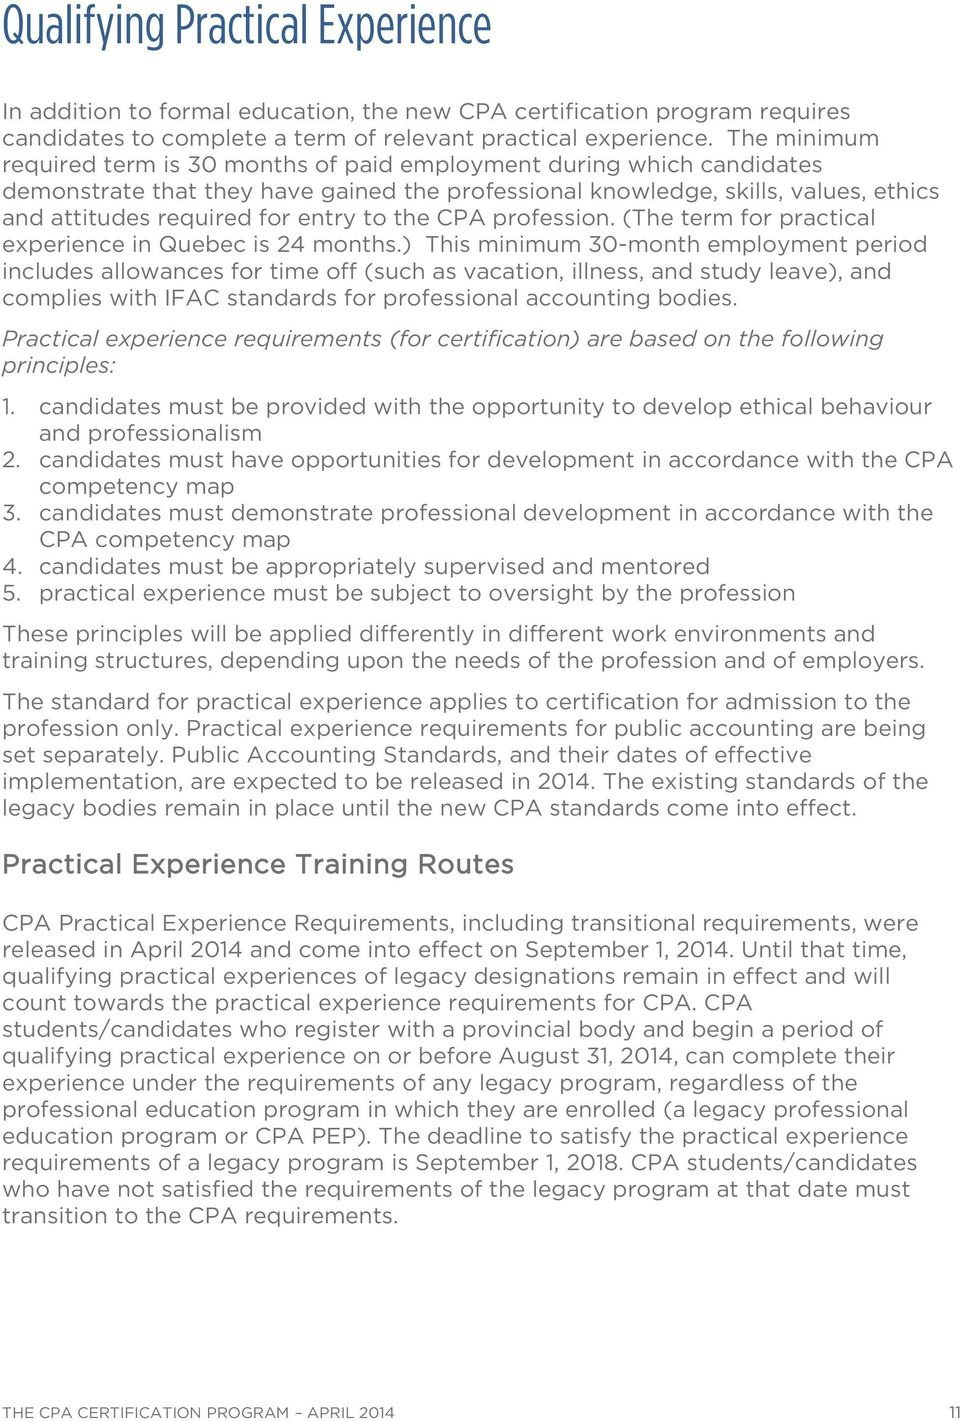 to the CPA profession. (The term for practical experience in Quebec is 24 months.